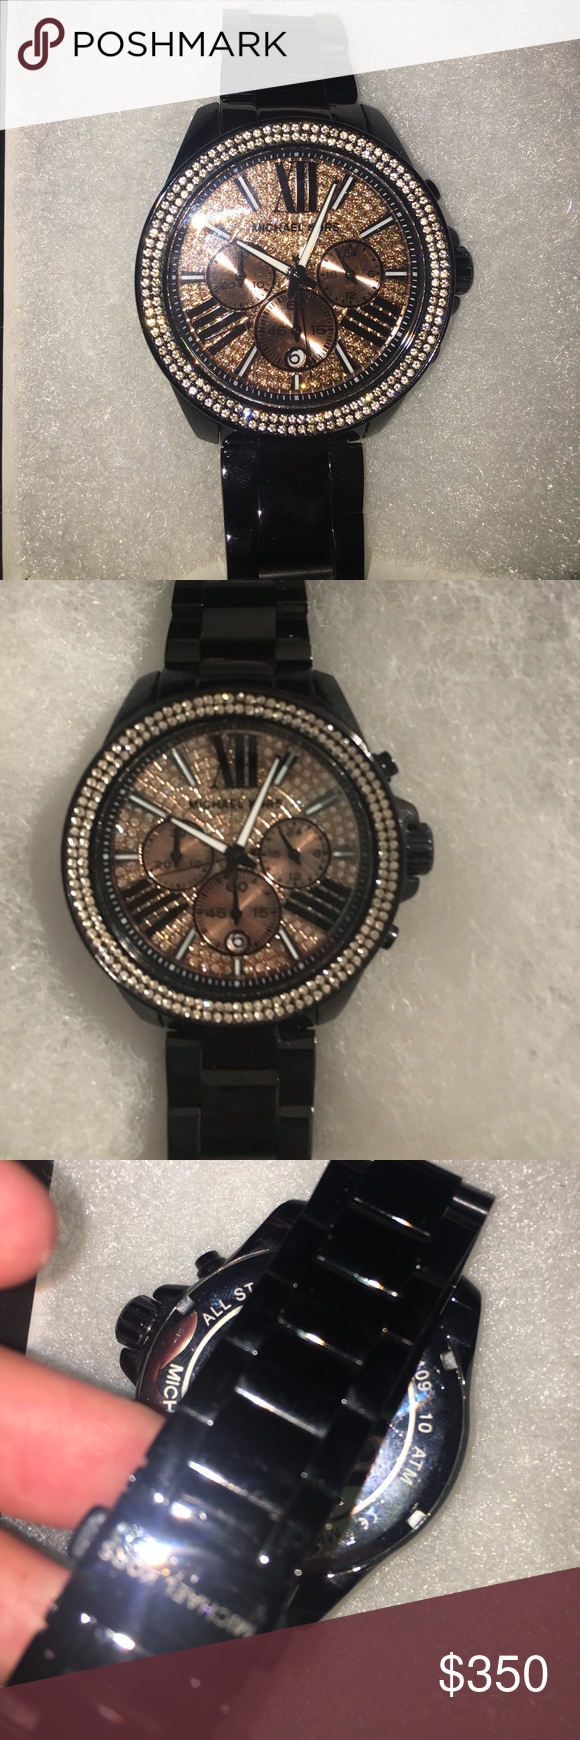 Michael kors blacks watch with rose gold diamonds In great condition Michael kors watch! I do have the box for the watch. KORS Michael Kors Accessories Watches